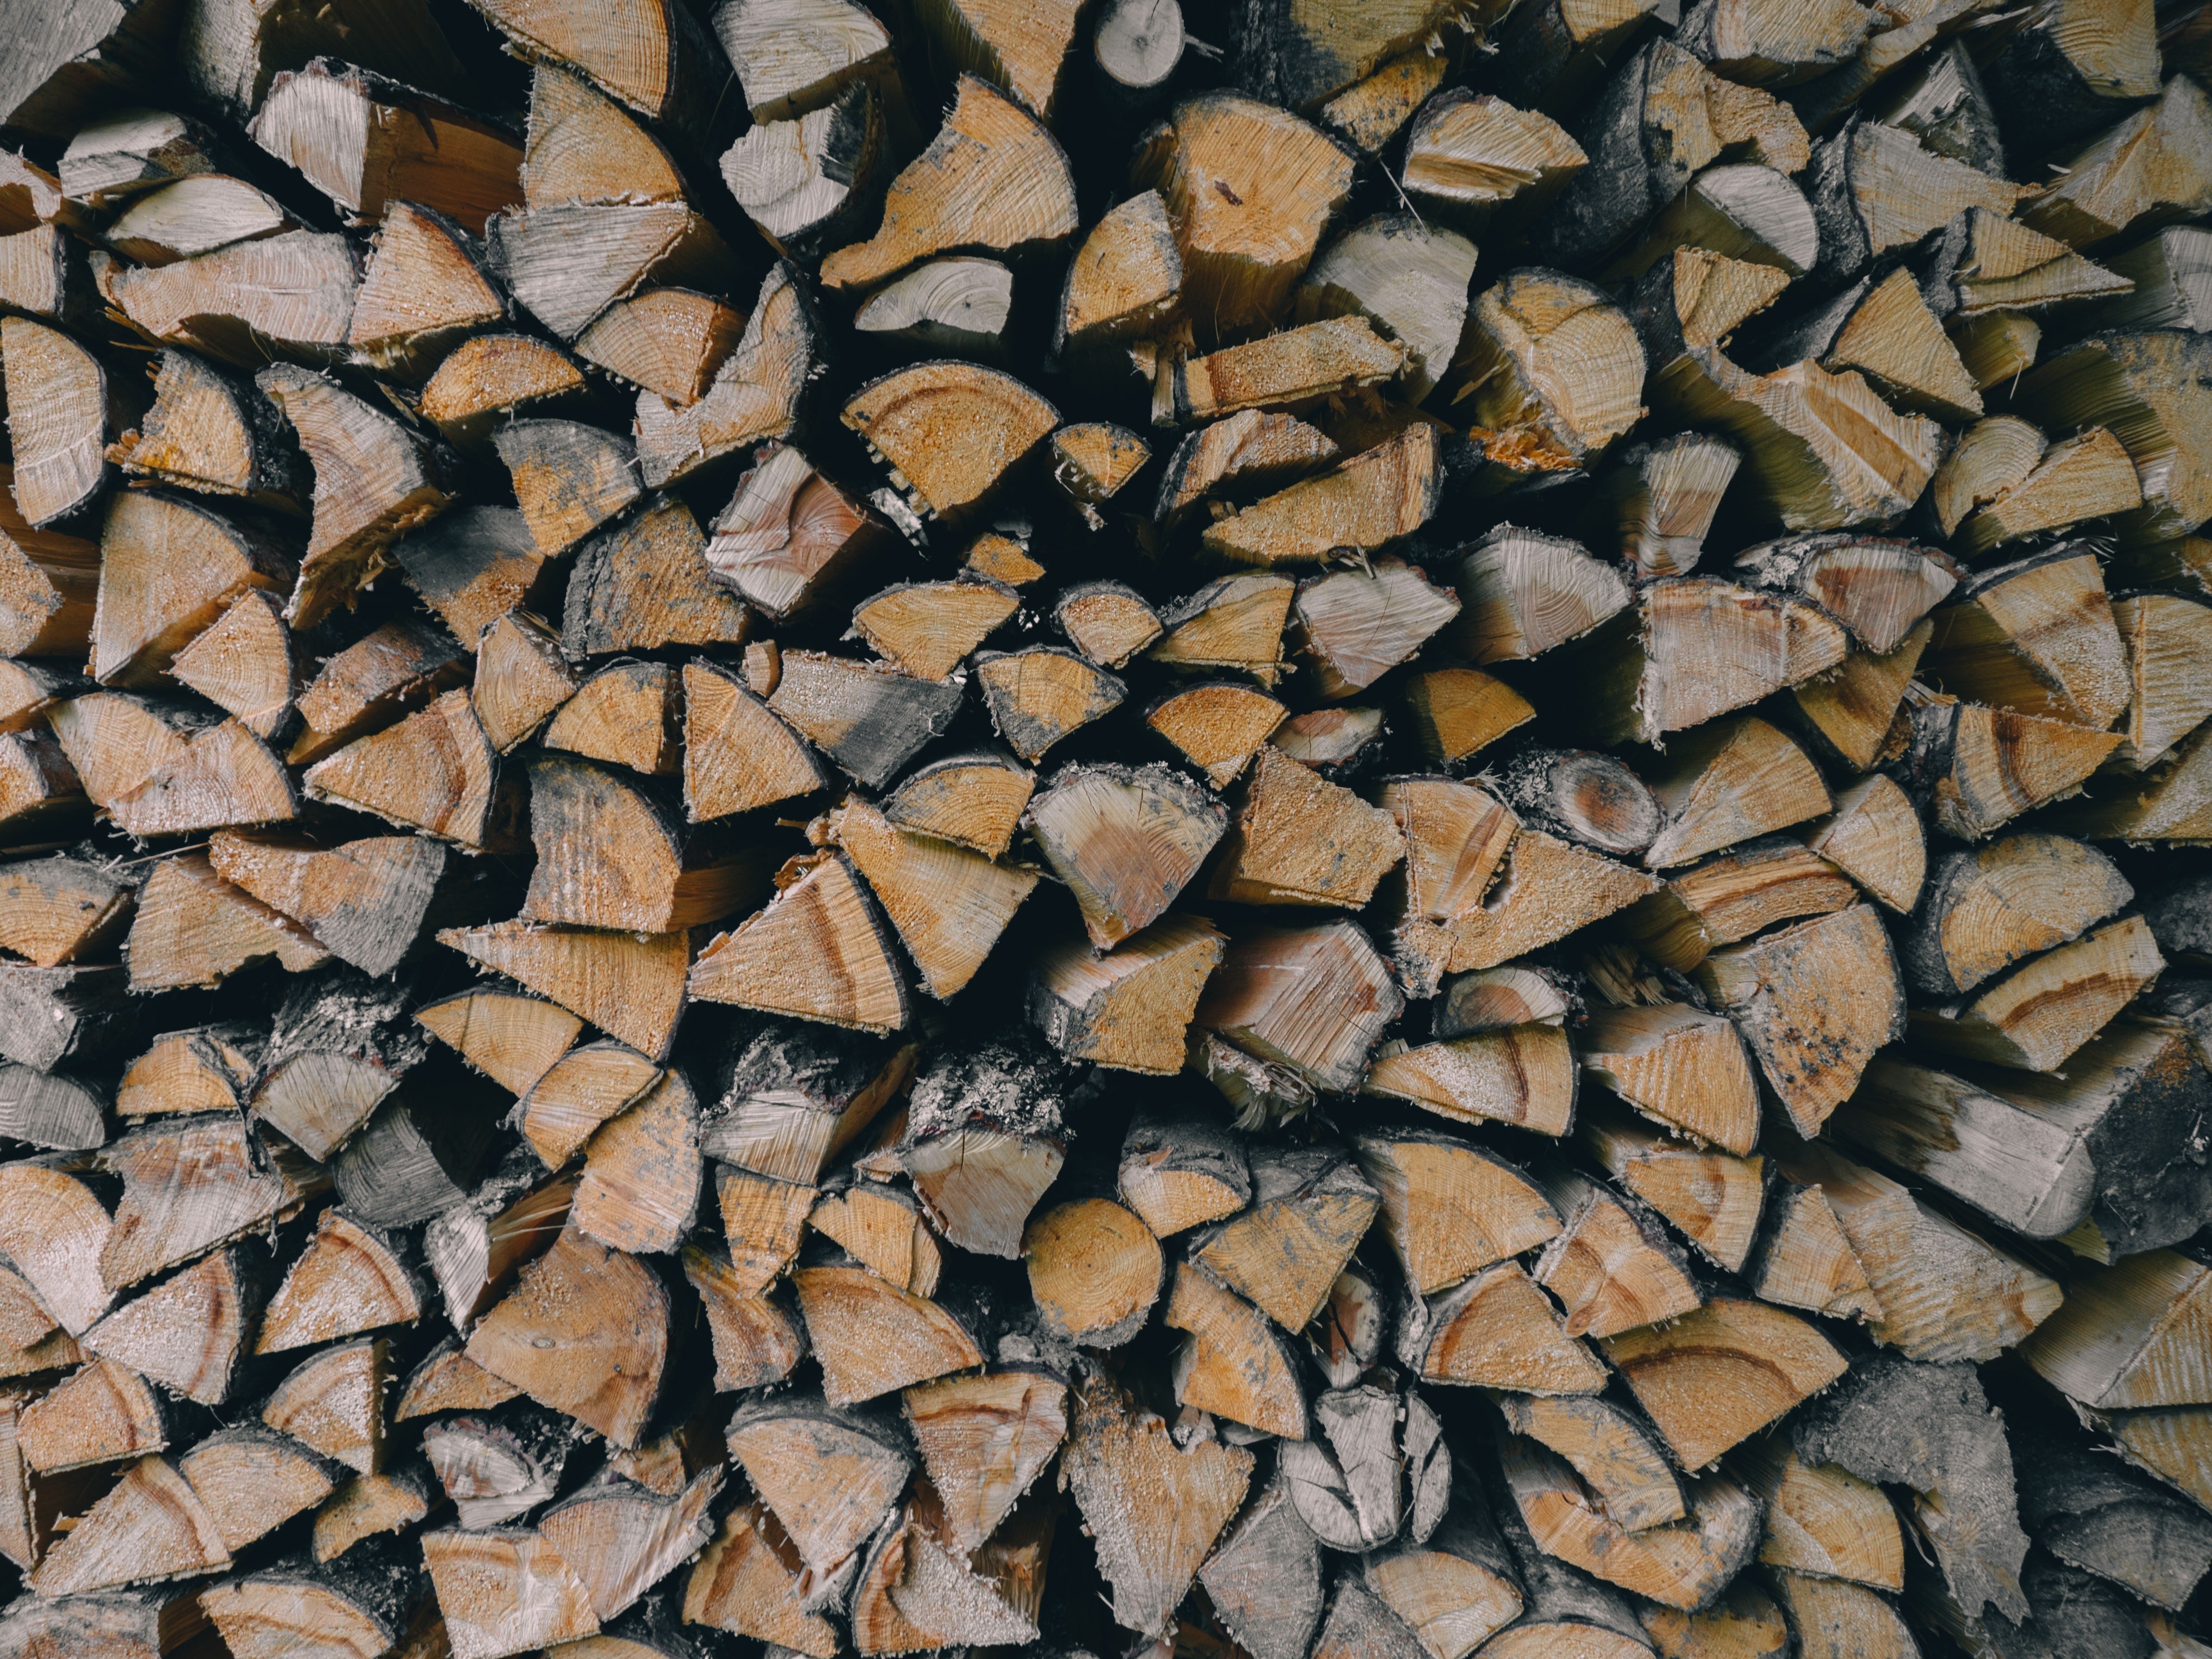 A large stack of firewood cut into wedge-shaped pieces